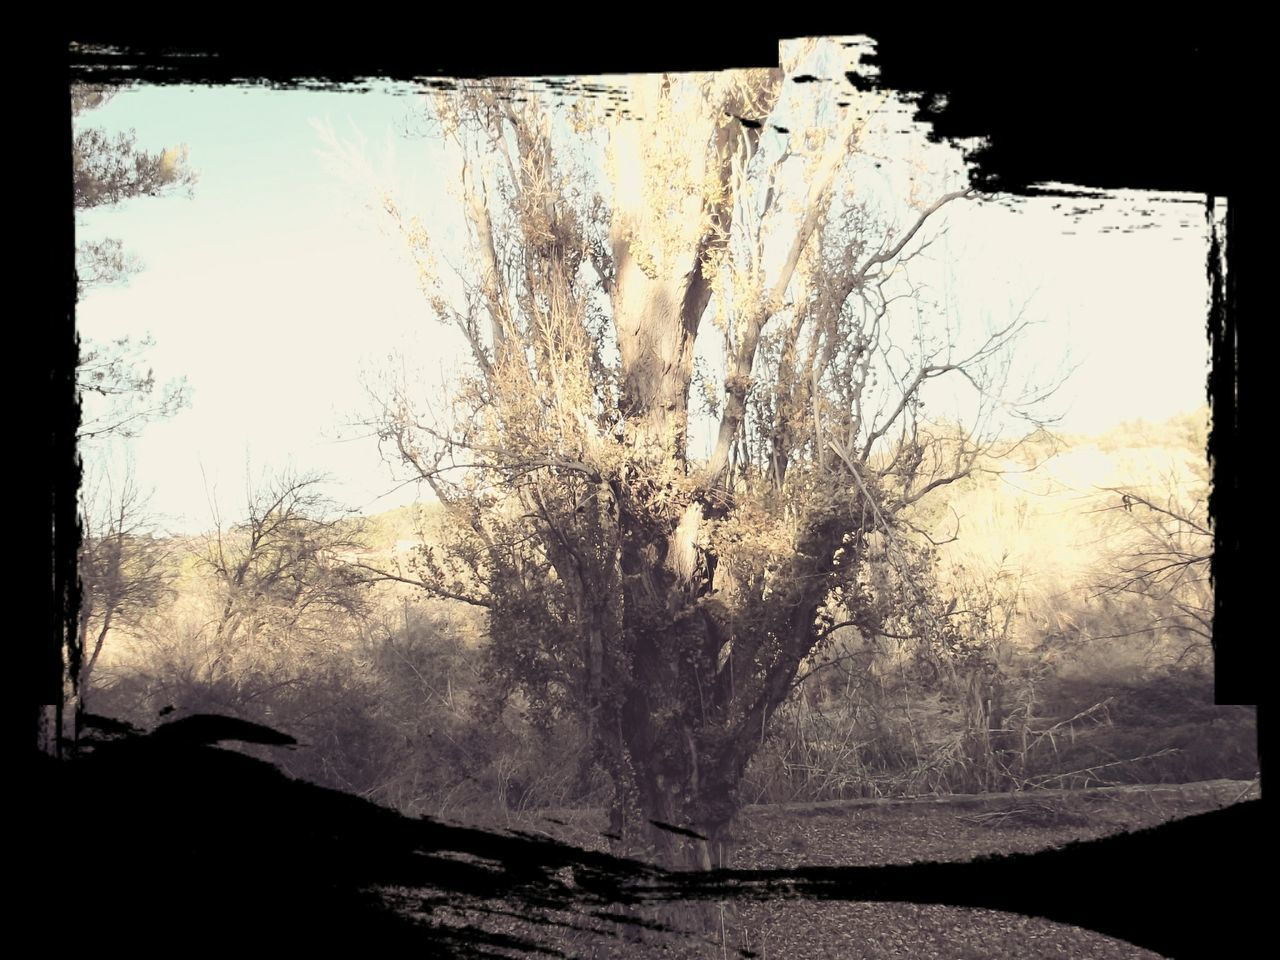 tree, nature, landscape, silhouette, bare tree, beauty in nature, day, outdoors, branch, sky, no people